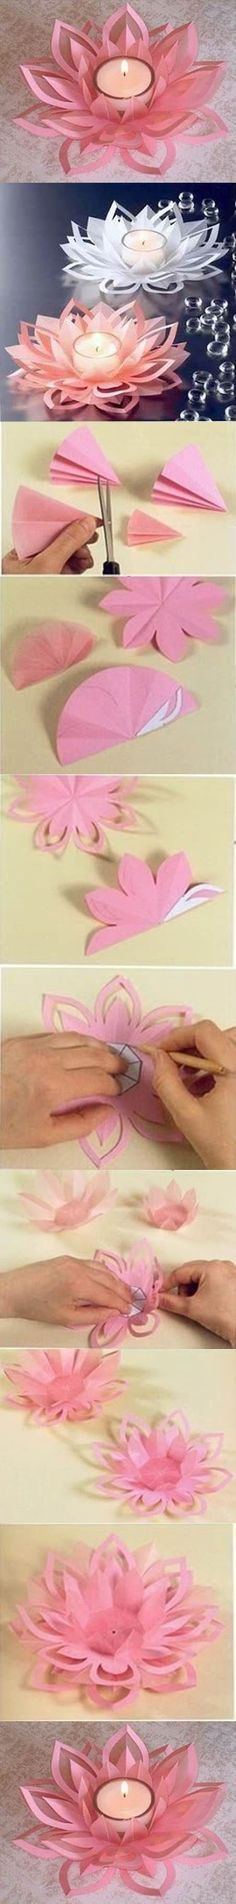 DIY Paper Lotus tea candle decor. The perfect way to dress up a plain tea candle!